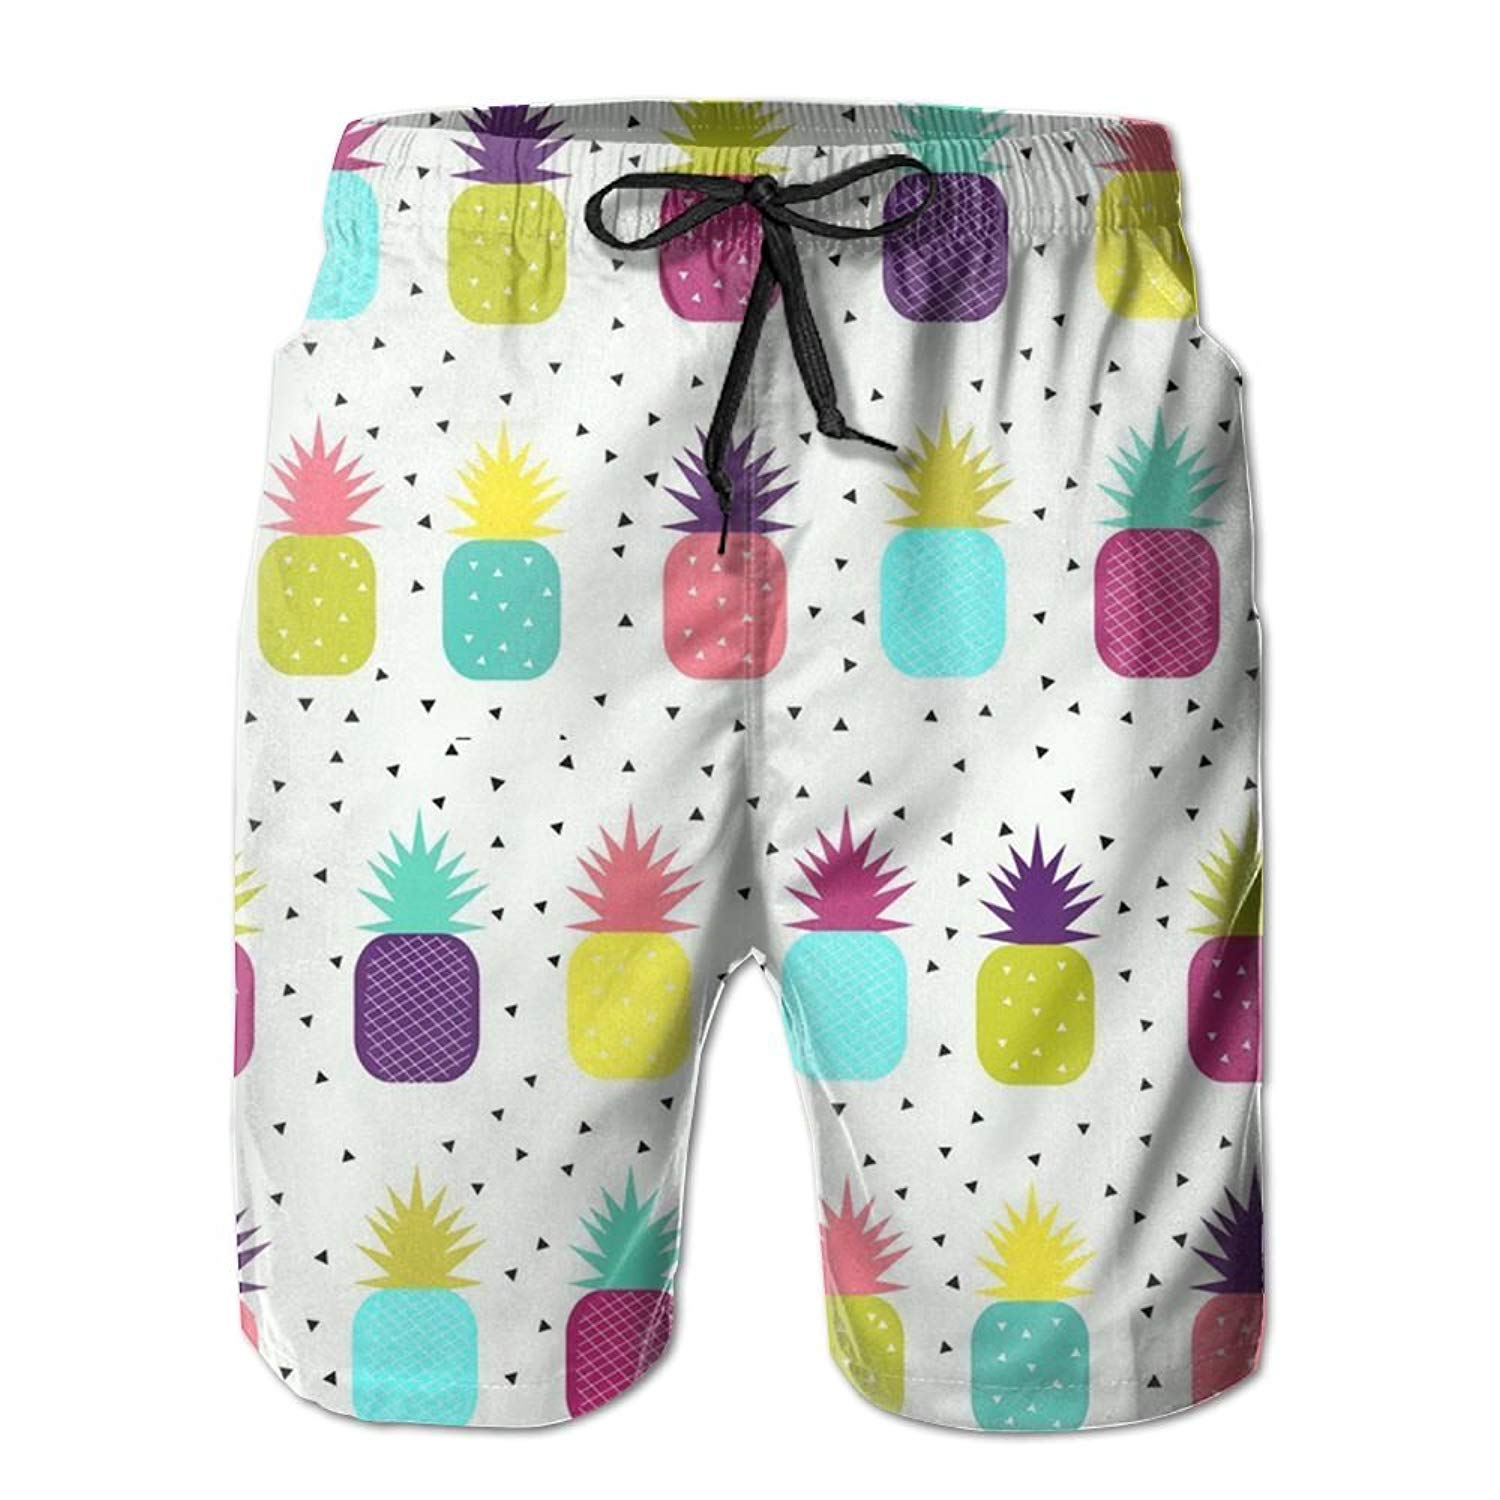 821db46c96 Get Quotations · KIOT156 Pineapples - Bright, Colourful, Neon, Mens Summer  Breathable Swim Trunks Beach Shorts